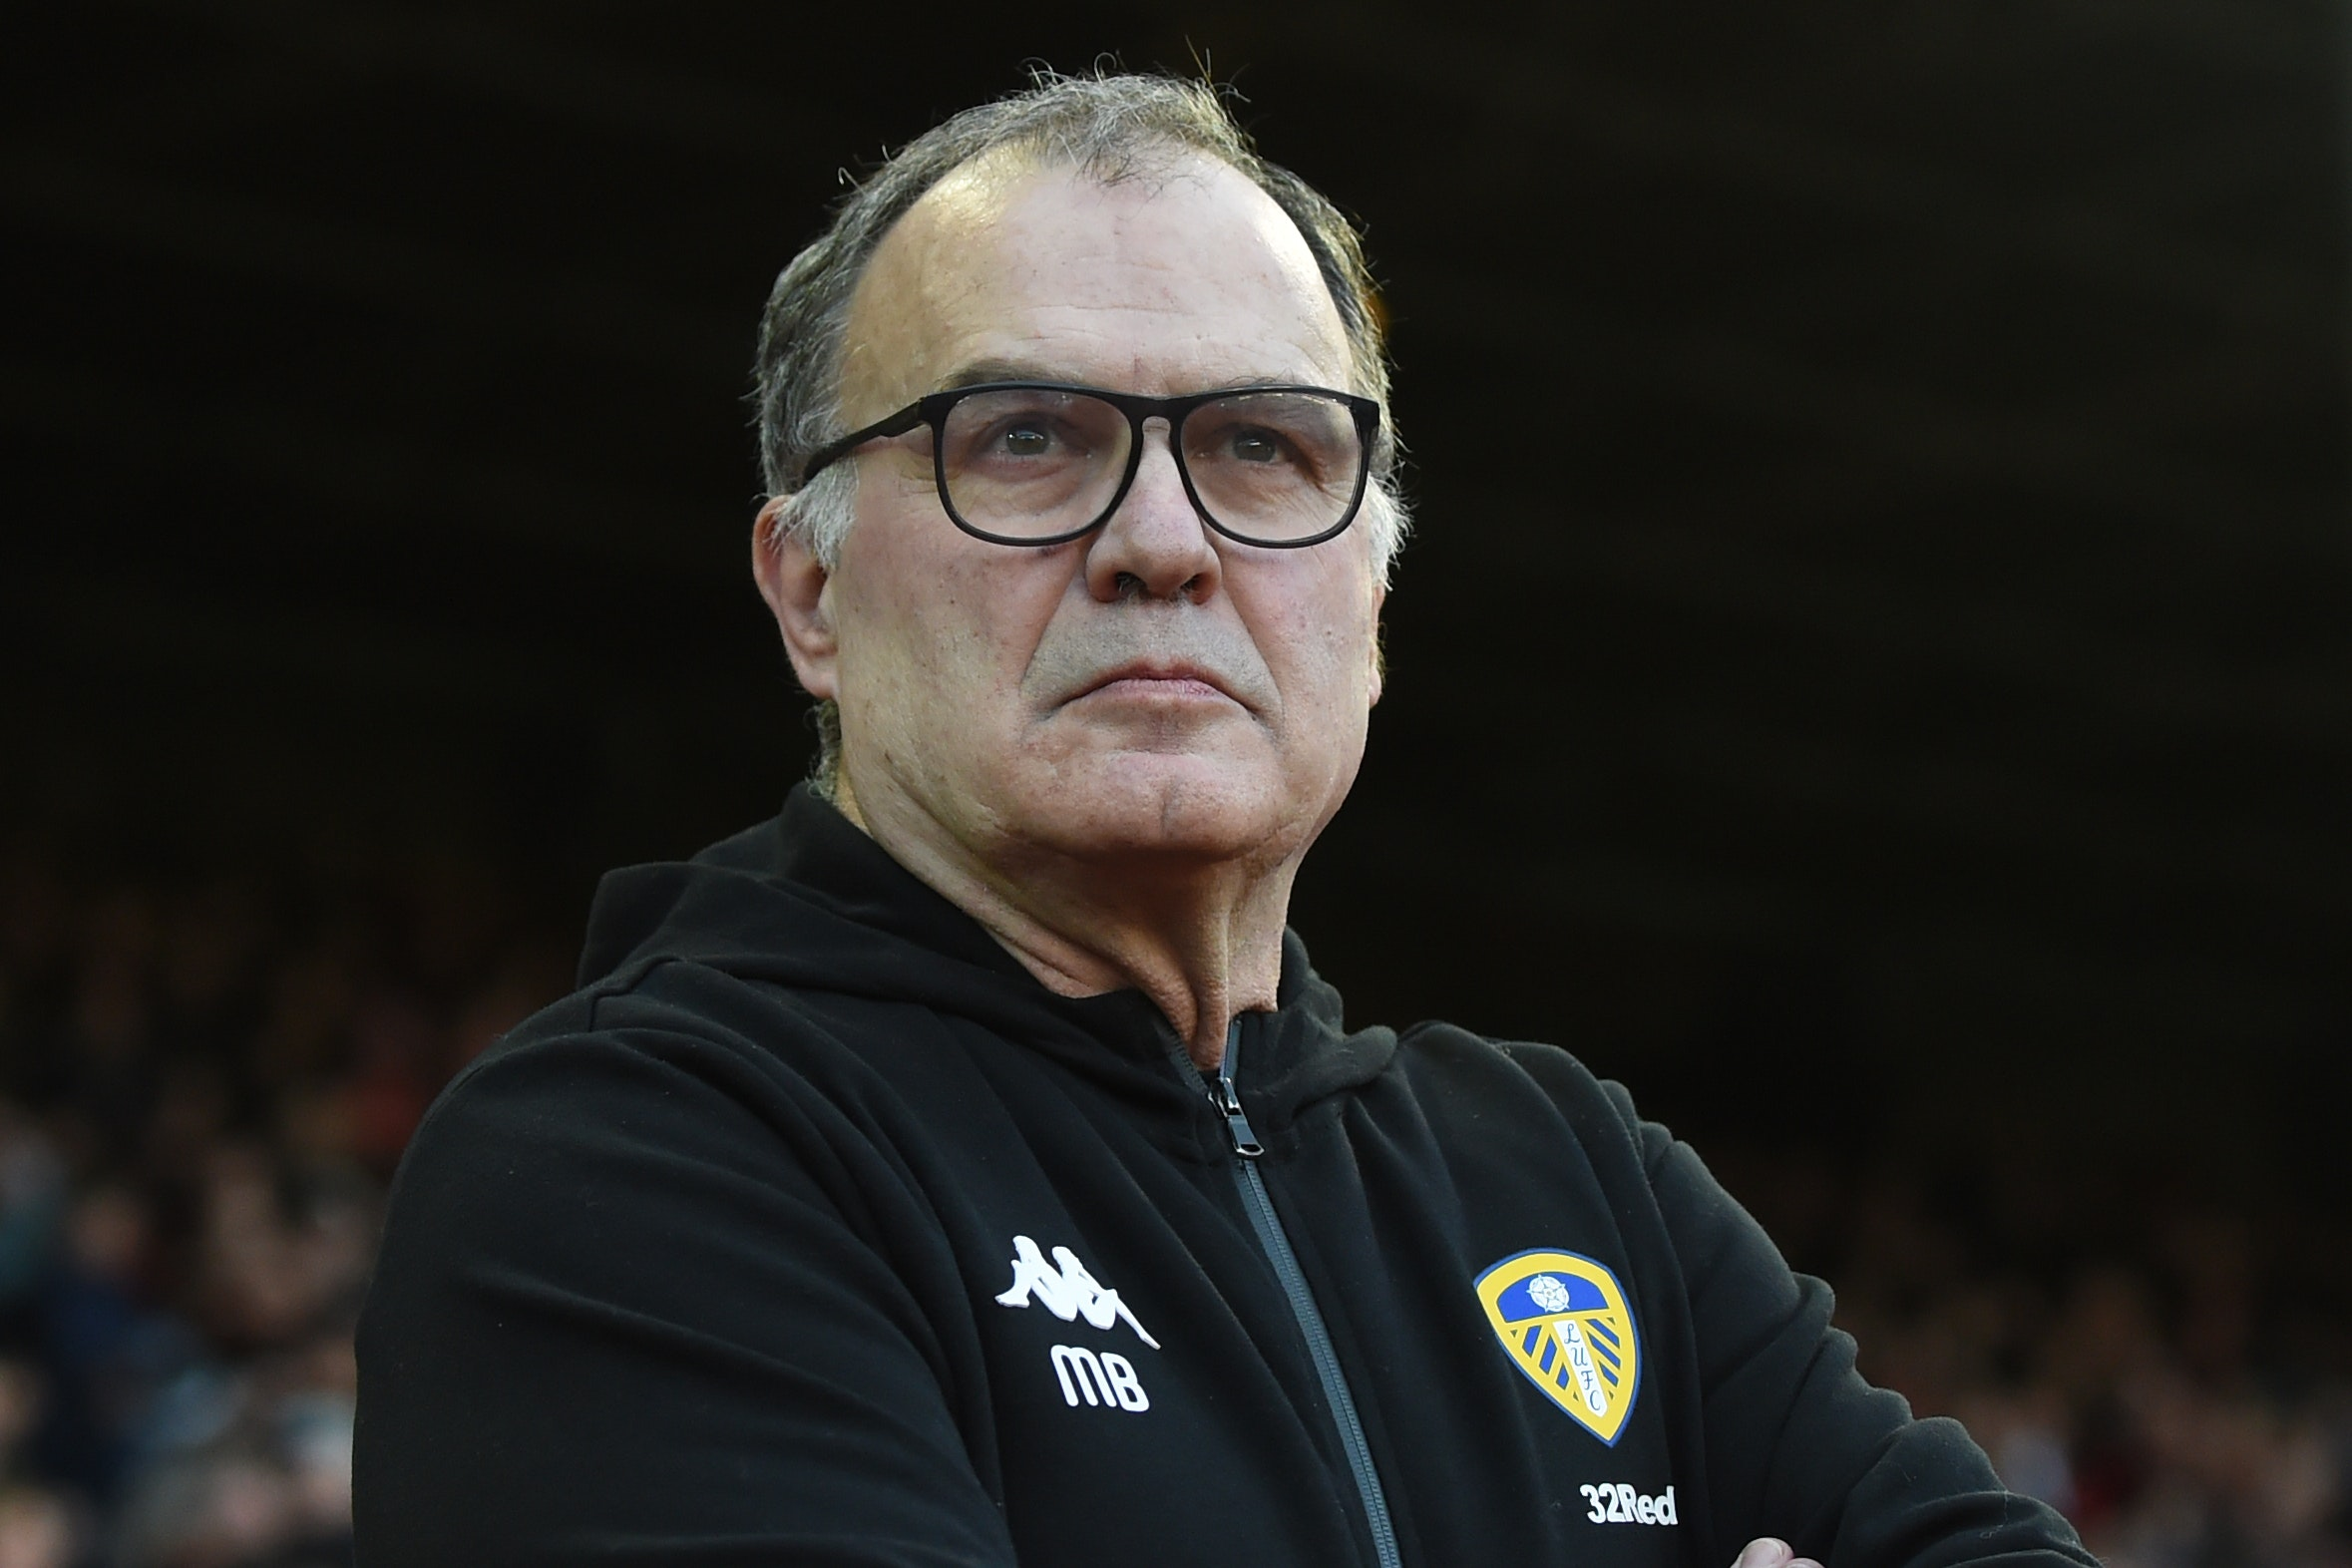 Leeds have reminded Marcelo Bielsa of his responsibilities (Joe Giddens/PA)